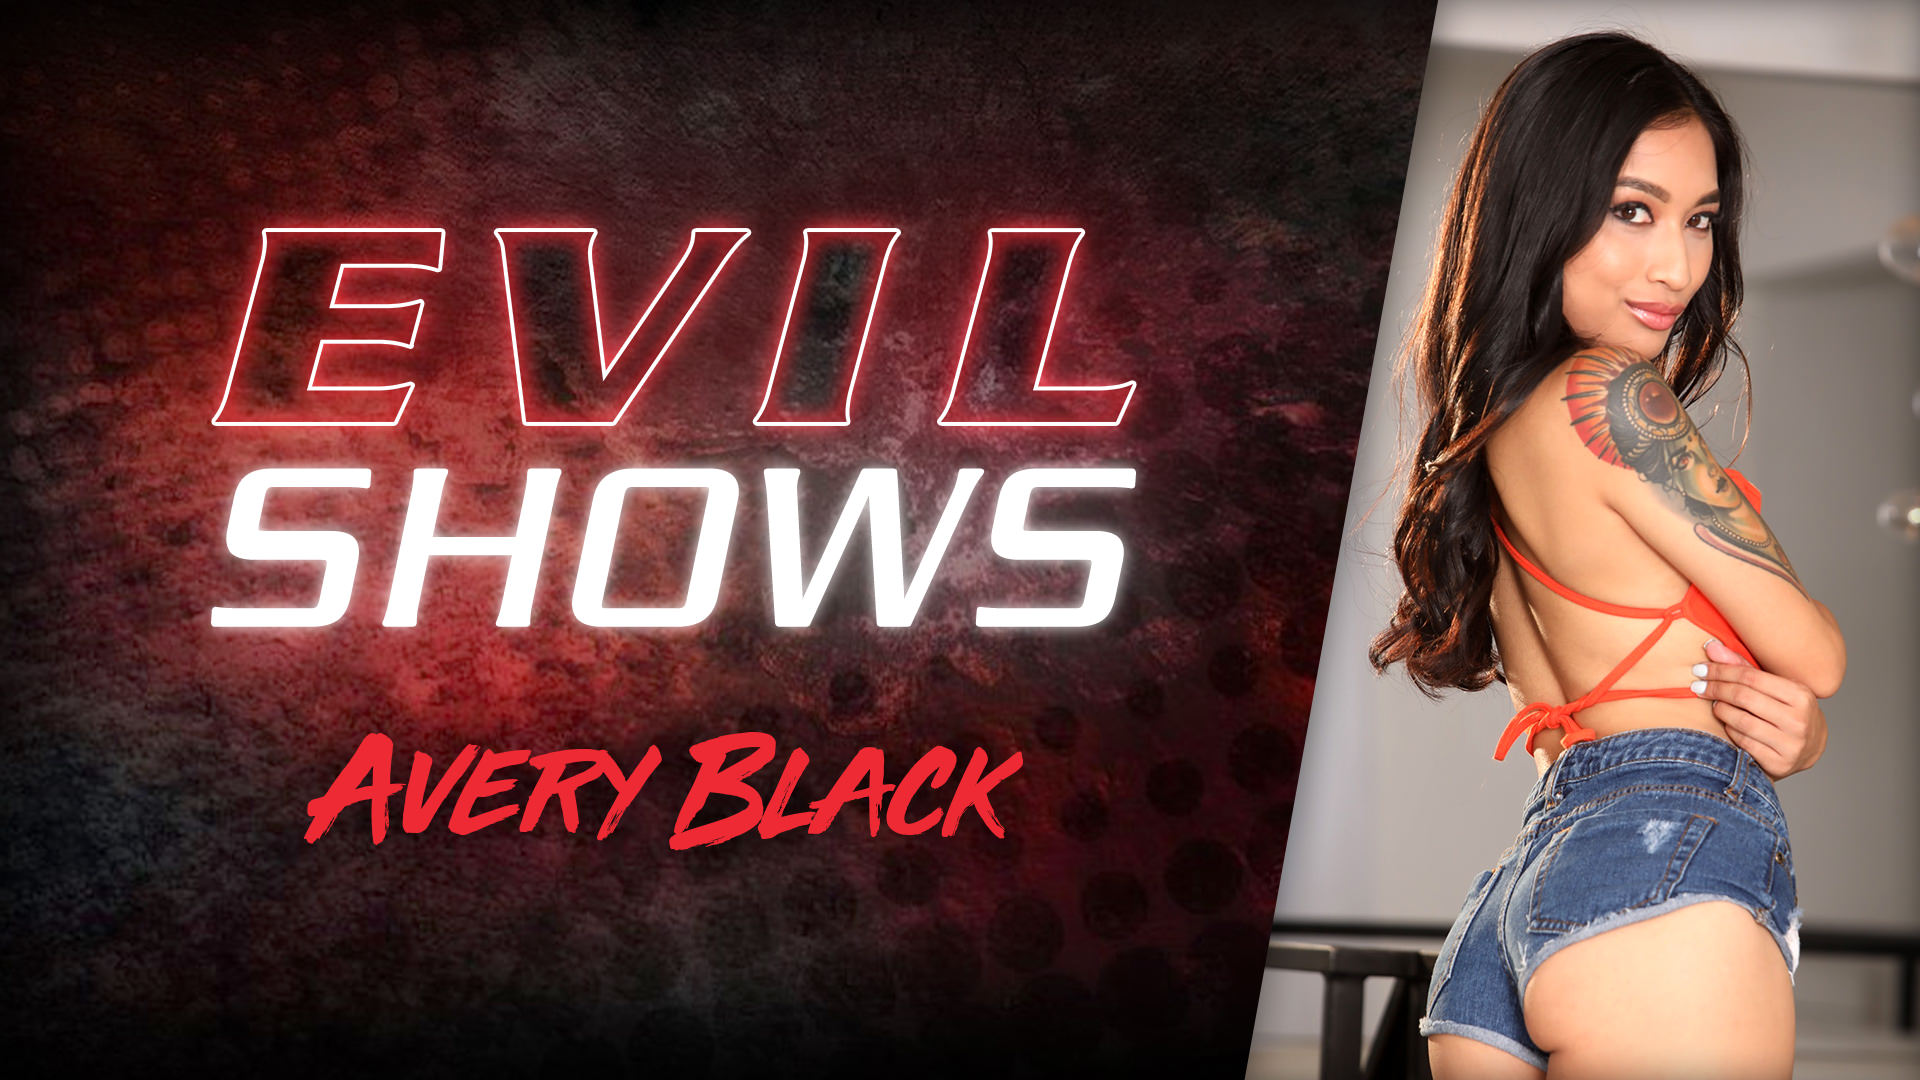 Evil Shows - Avery Black - Avery Black 1